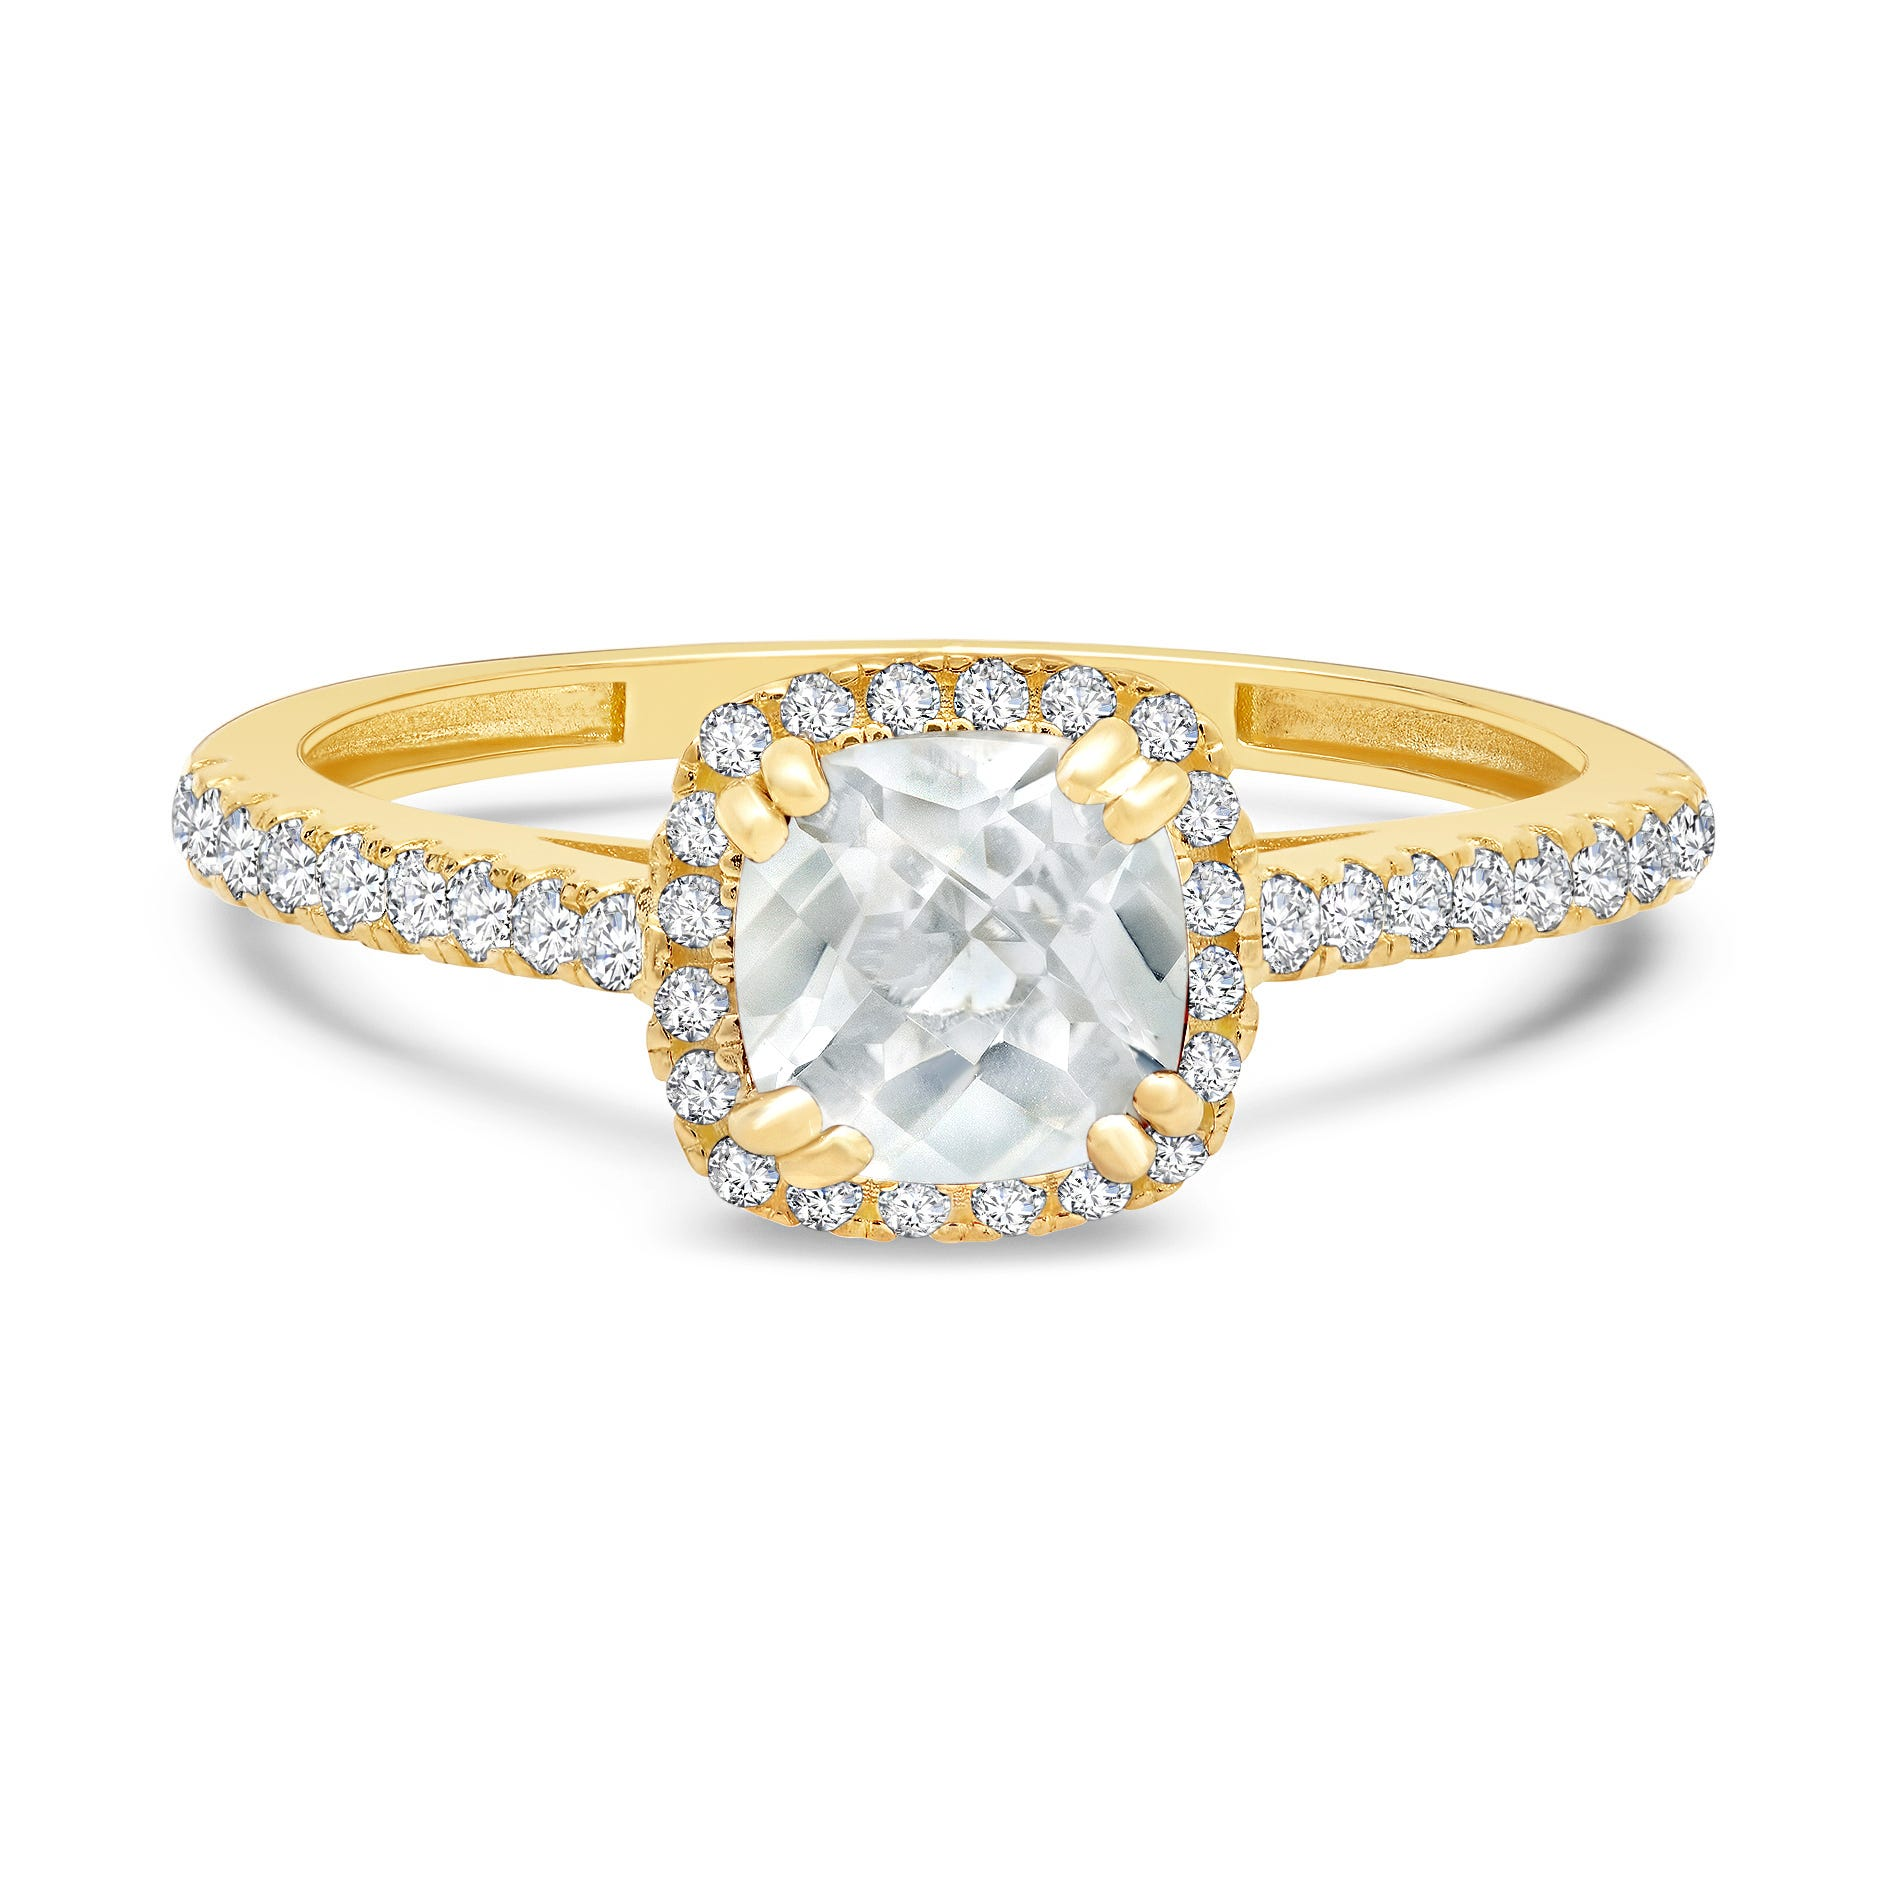 Cushion-Cut Created White Sapphire Ring in 10k Yellow Gold